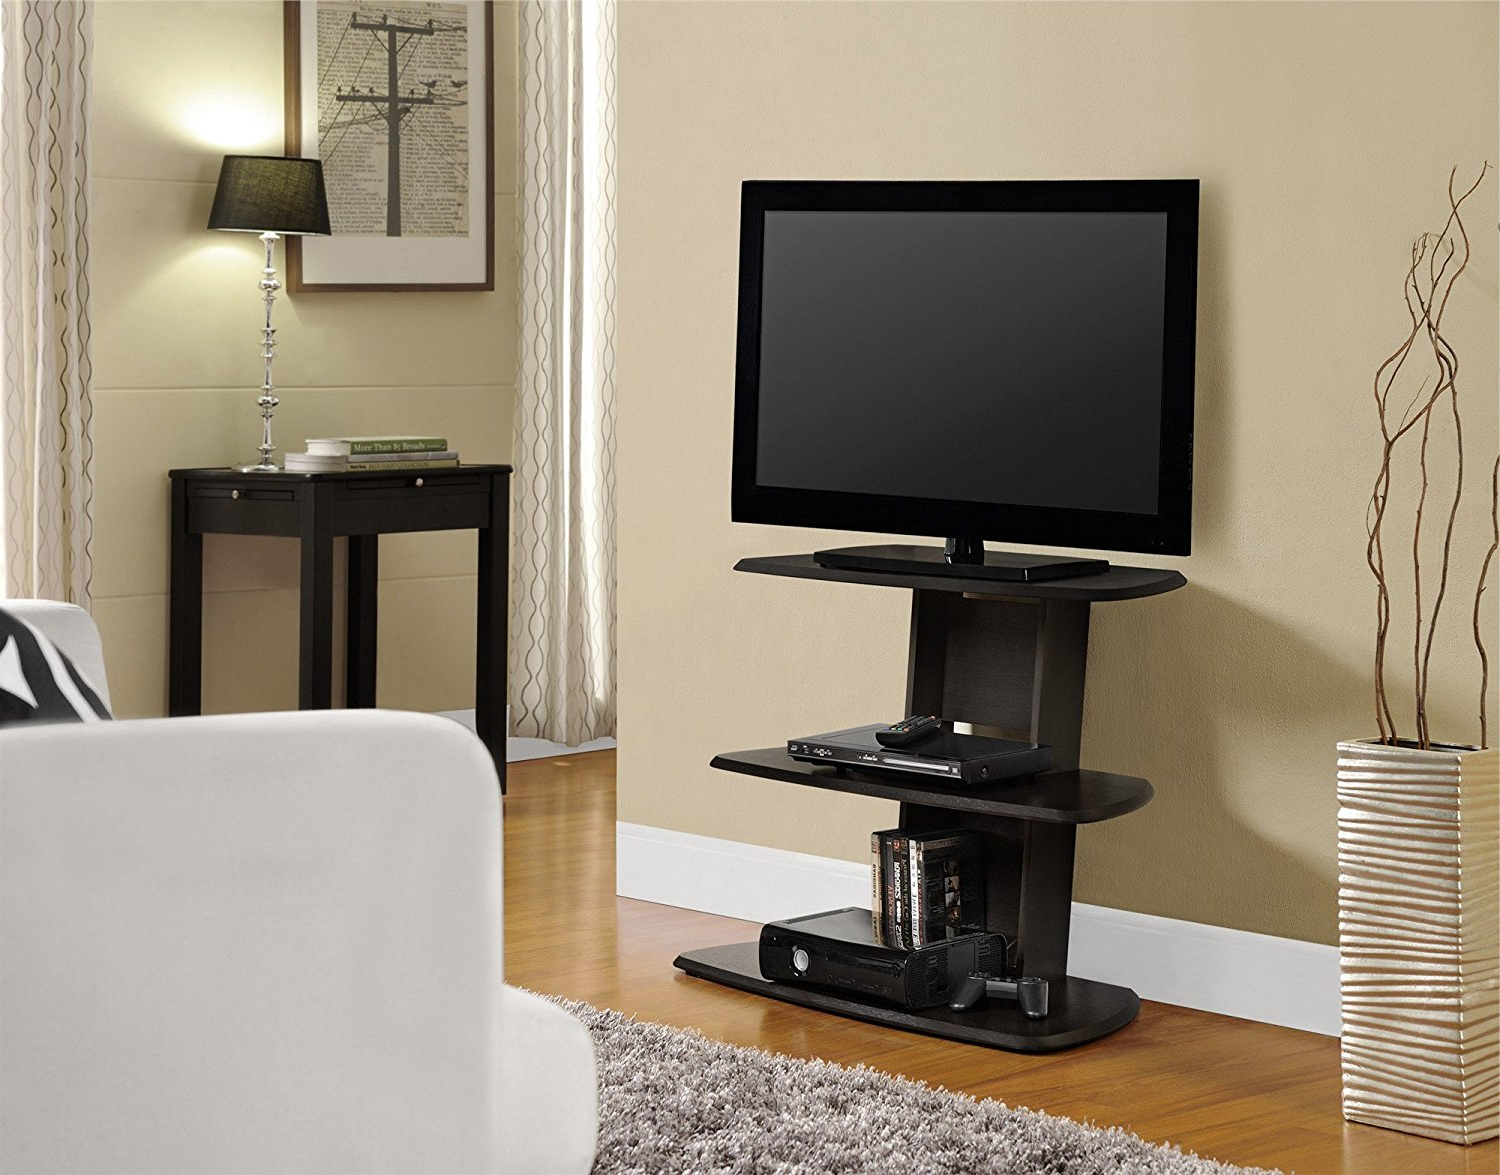 32 Inch Tv Stands Pertaining To Recent How To Find A 32 Inch Tv Stand For Your Budget – Furnish Ideas (Gallery 4 of 20)